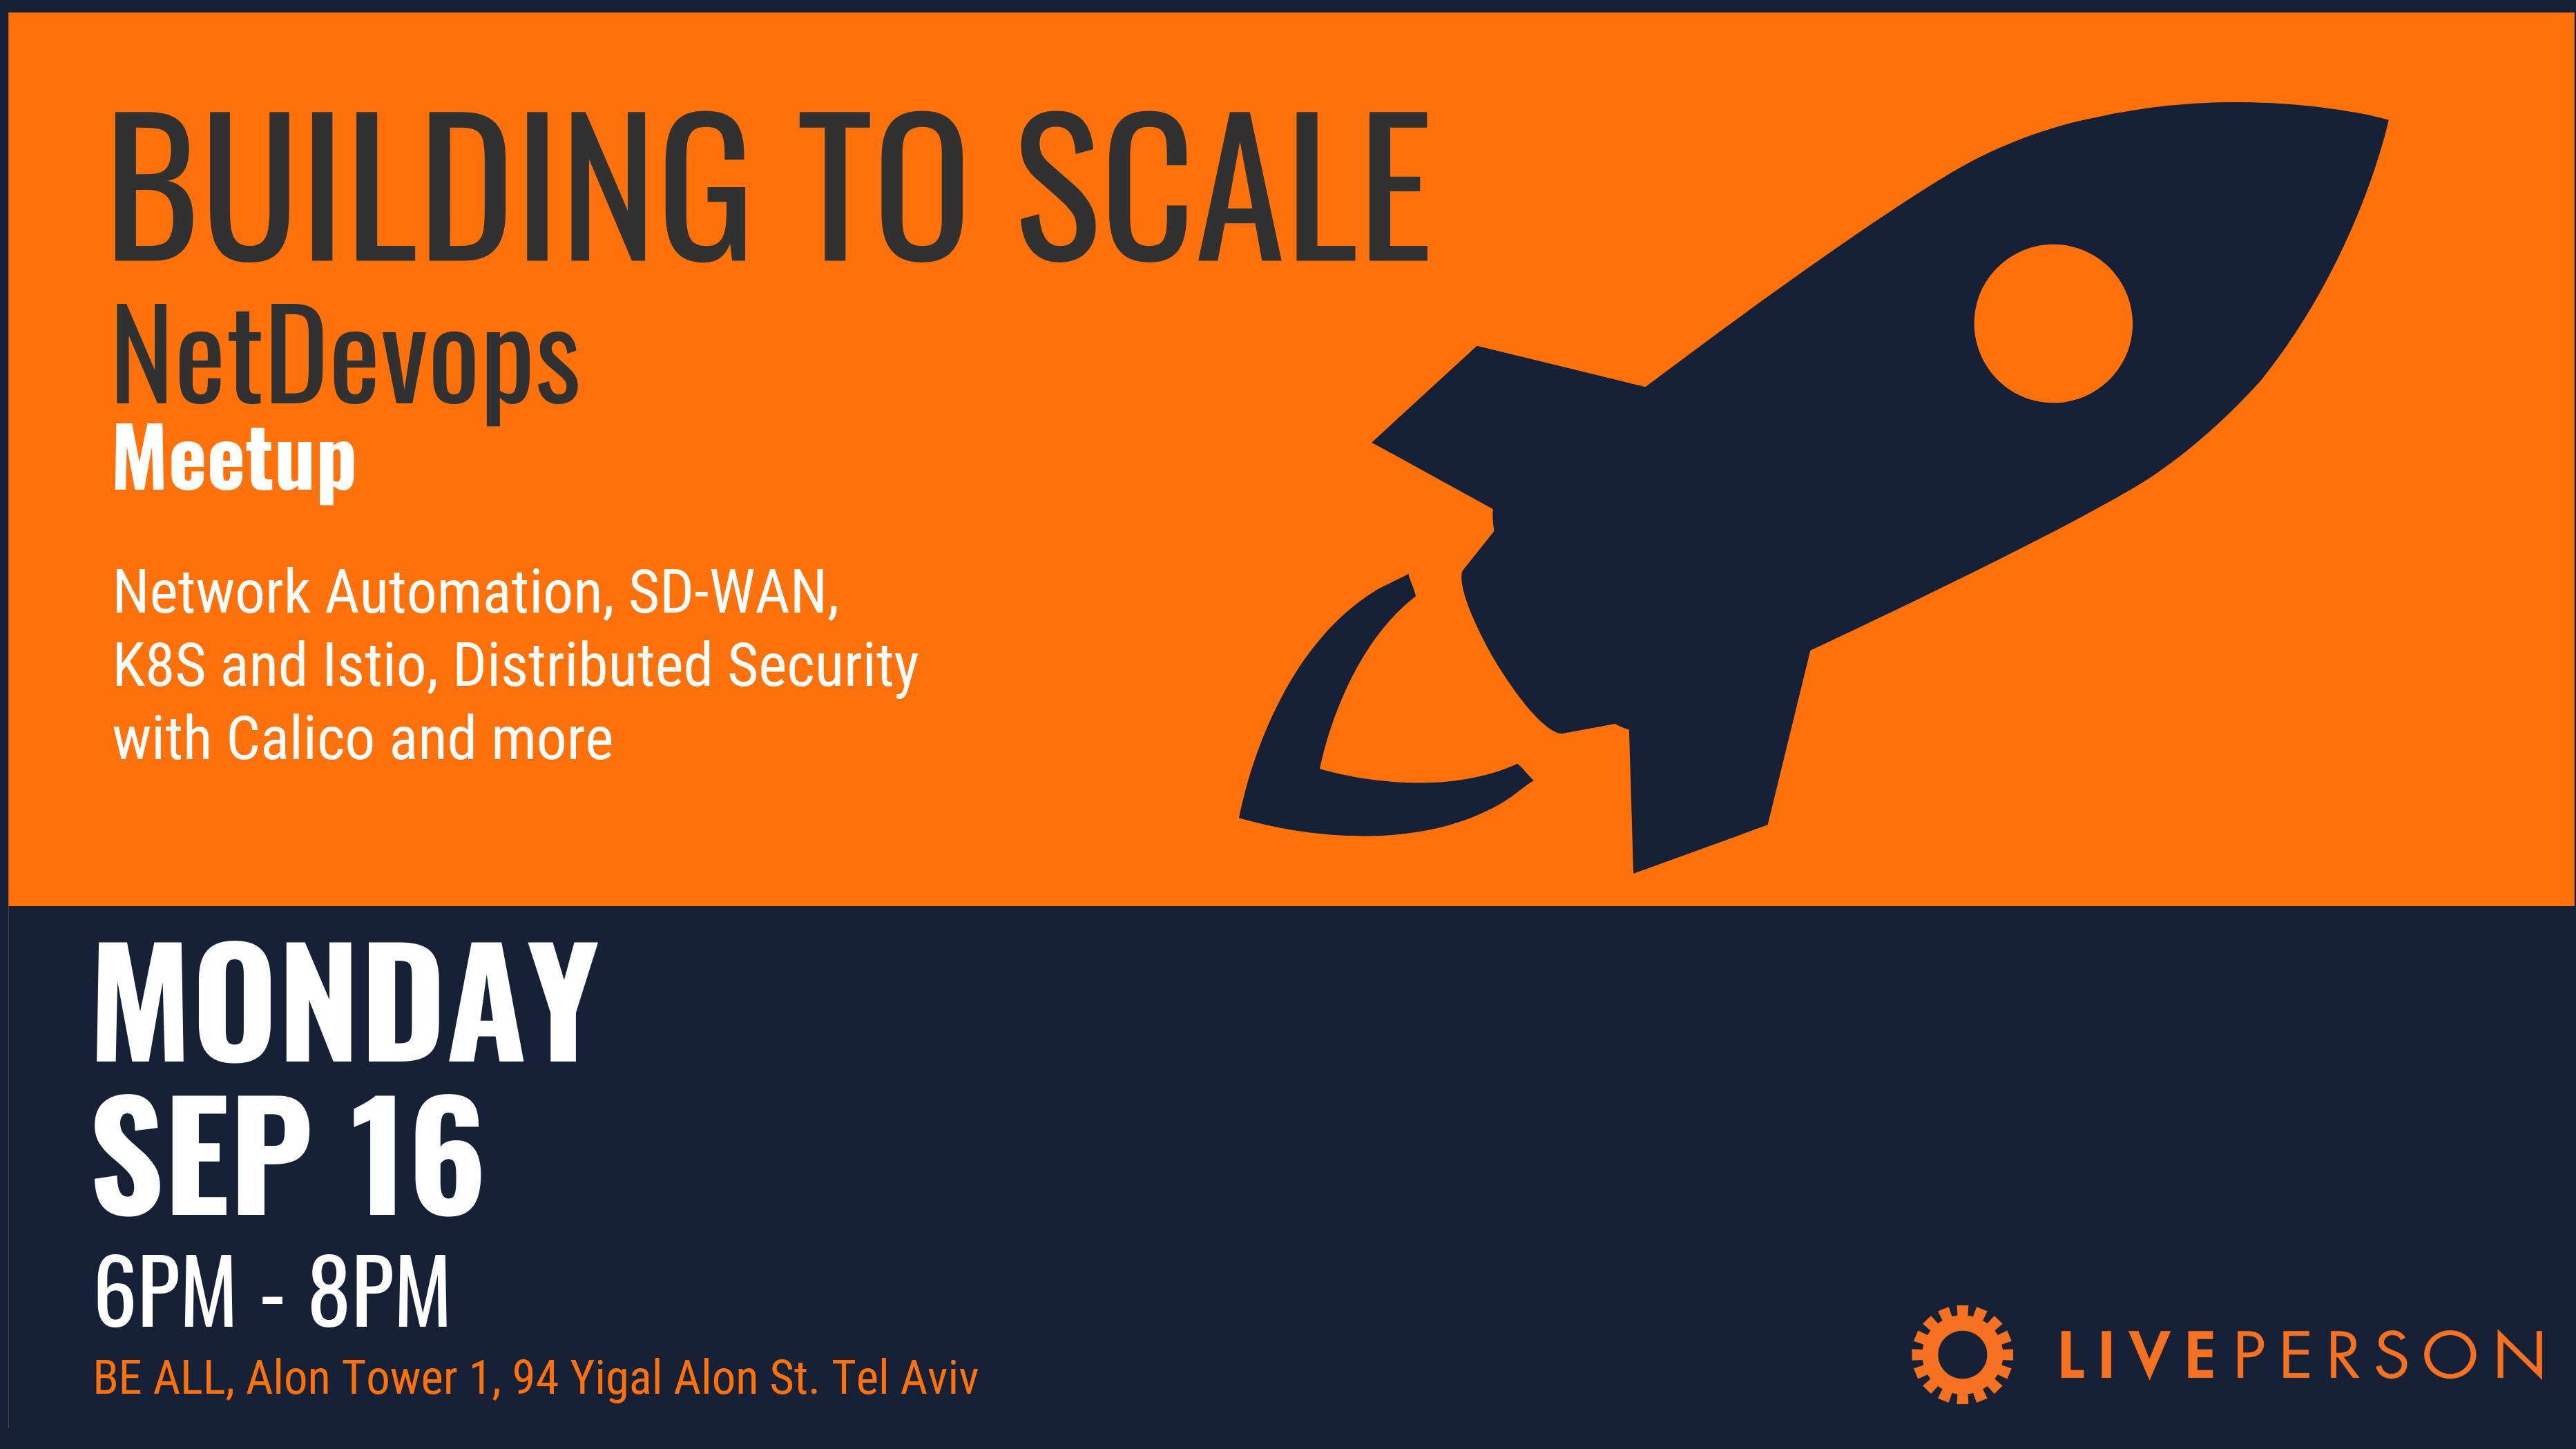 Building for Scale: NetDevOps with Liveperson